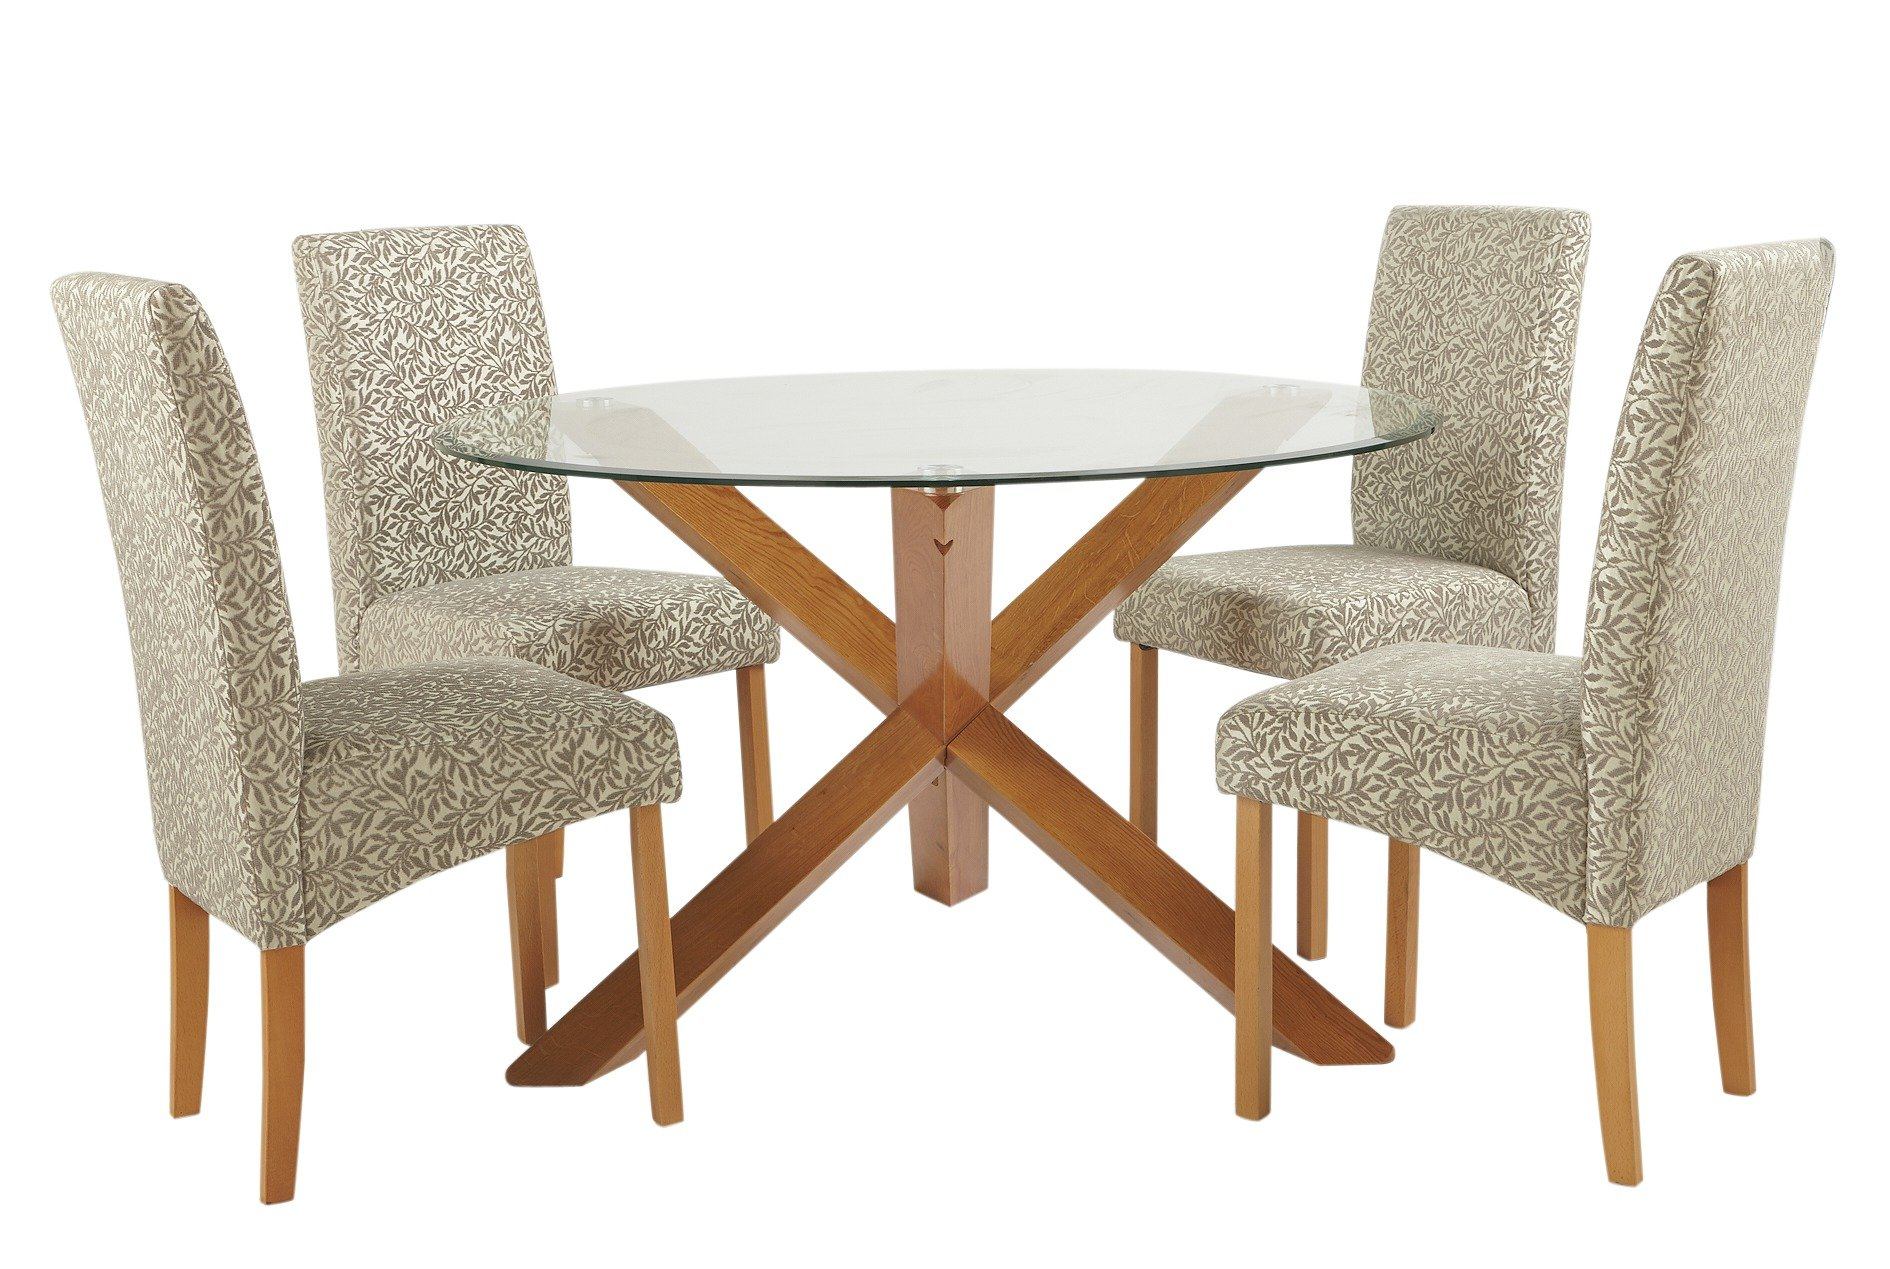 Buy Heart of House Oakington Round Glass Table amp 4 Chairs  : 5718036RZ001AWebampw570amph513 from www.argos.co.uk size 570 x 513 jpeg 36kB